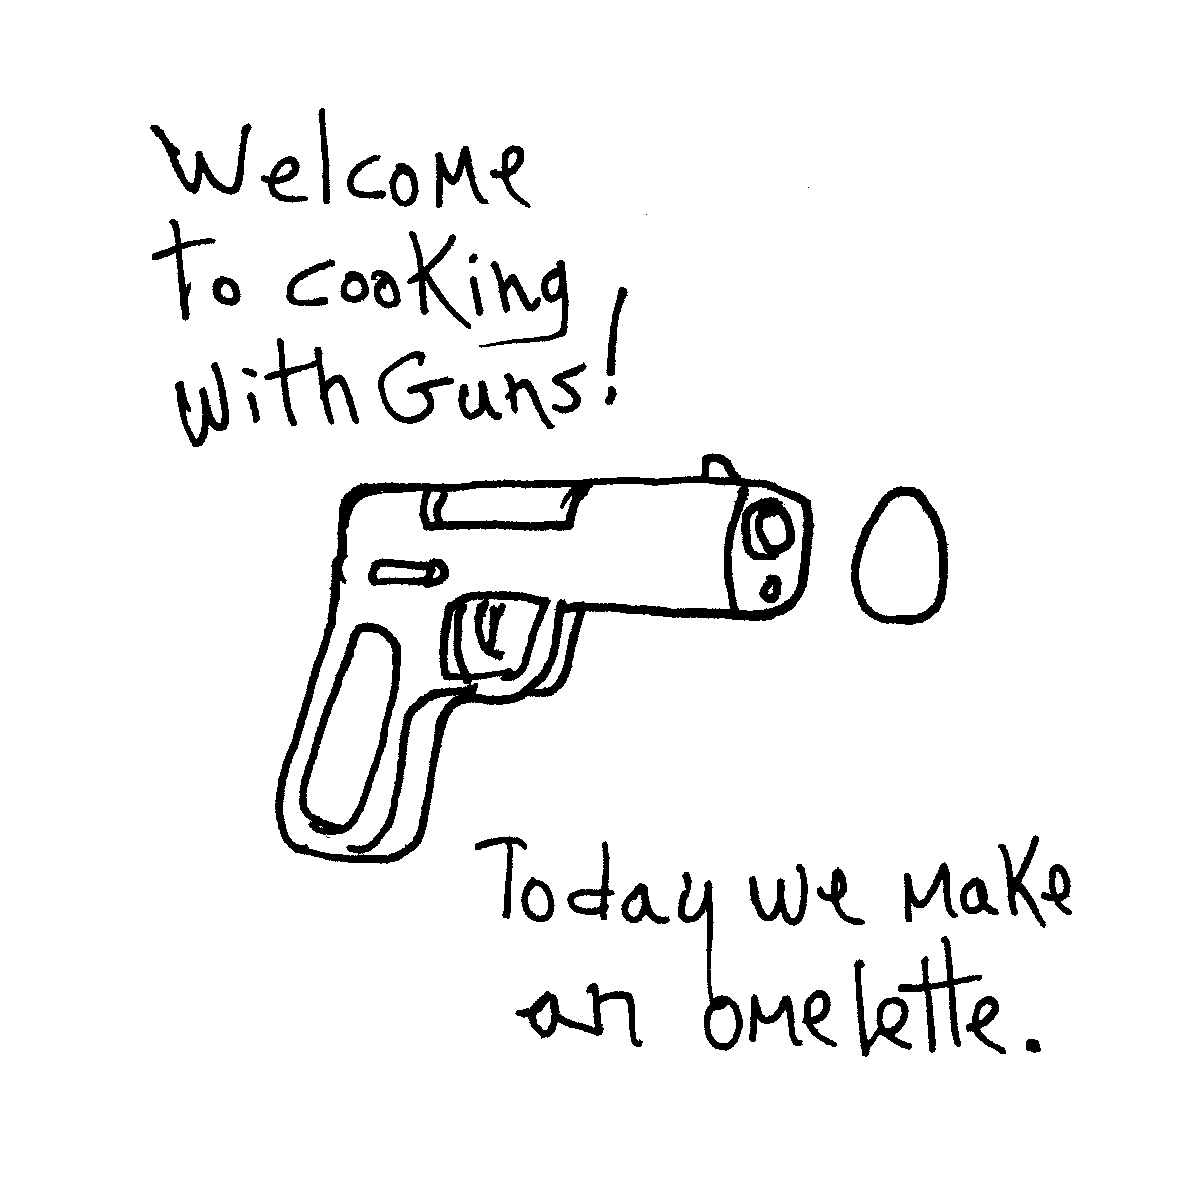 cooking with guns cartoon doodle